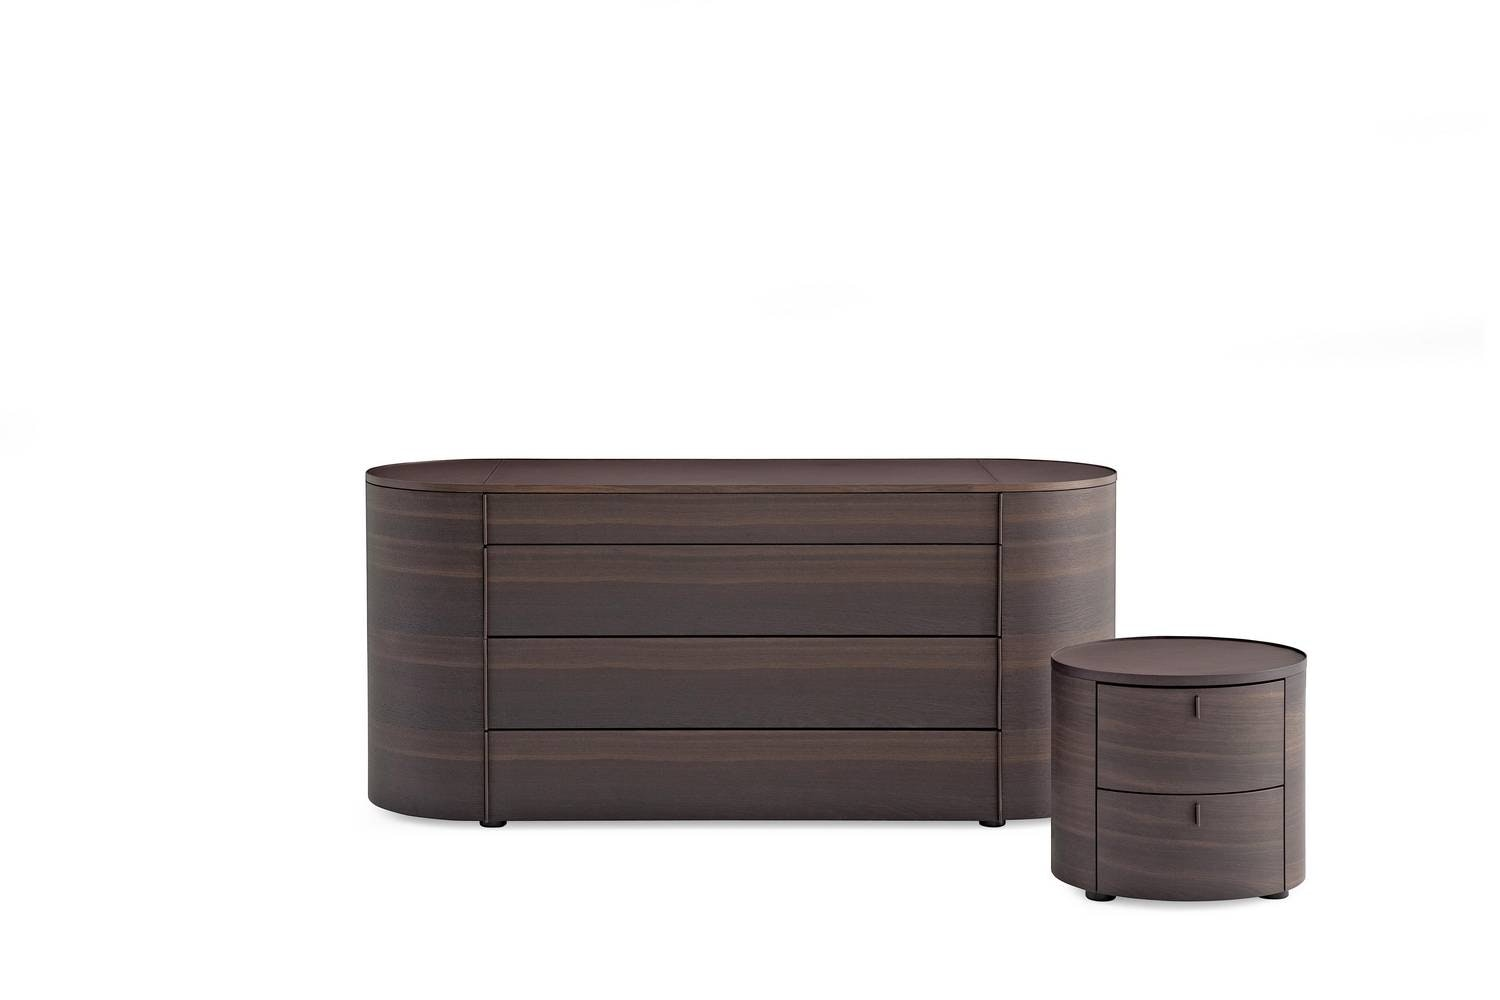 Onda Chest of Drawers by Paolo Piva for Poliform